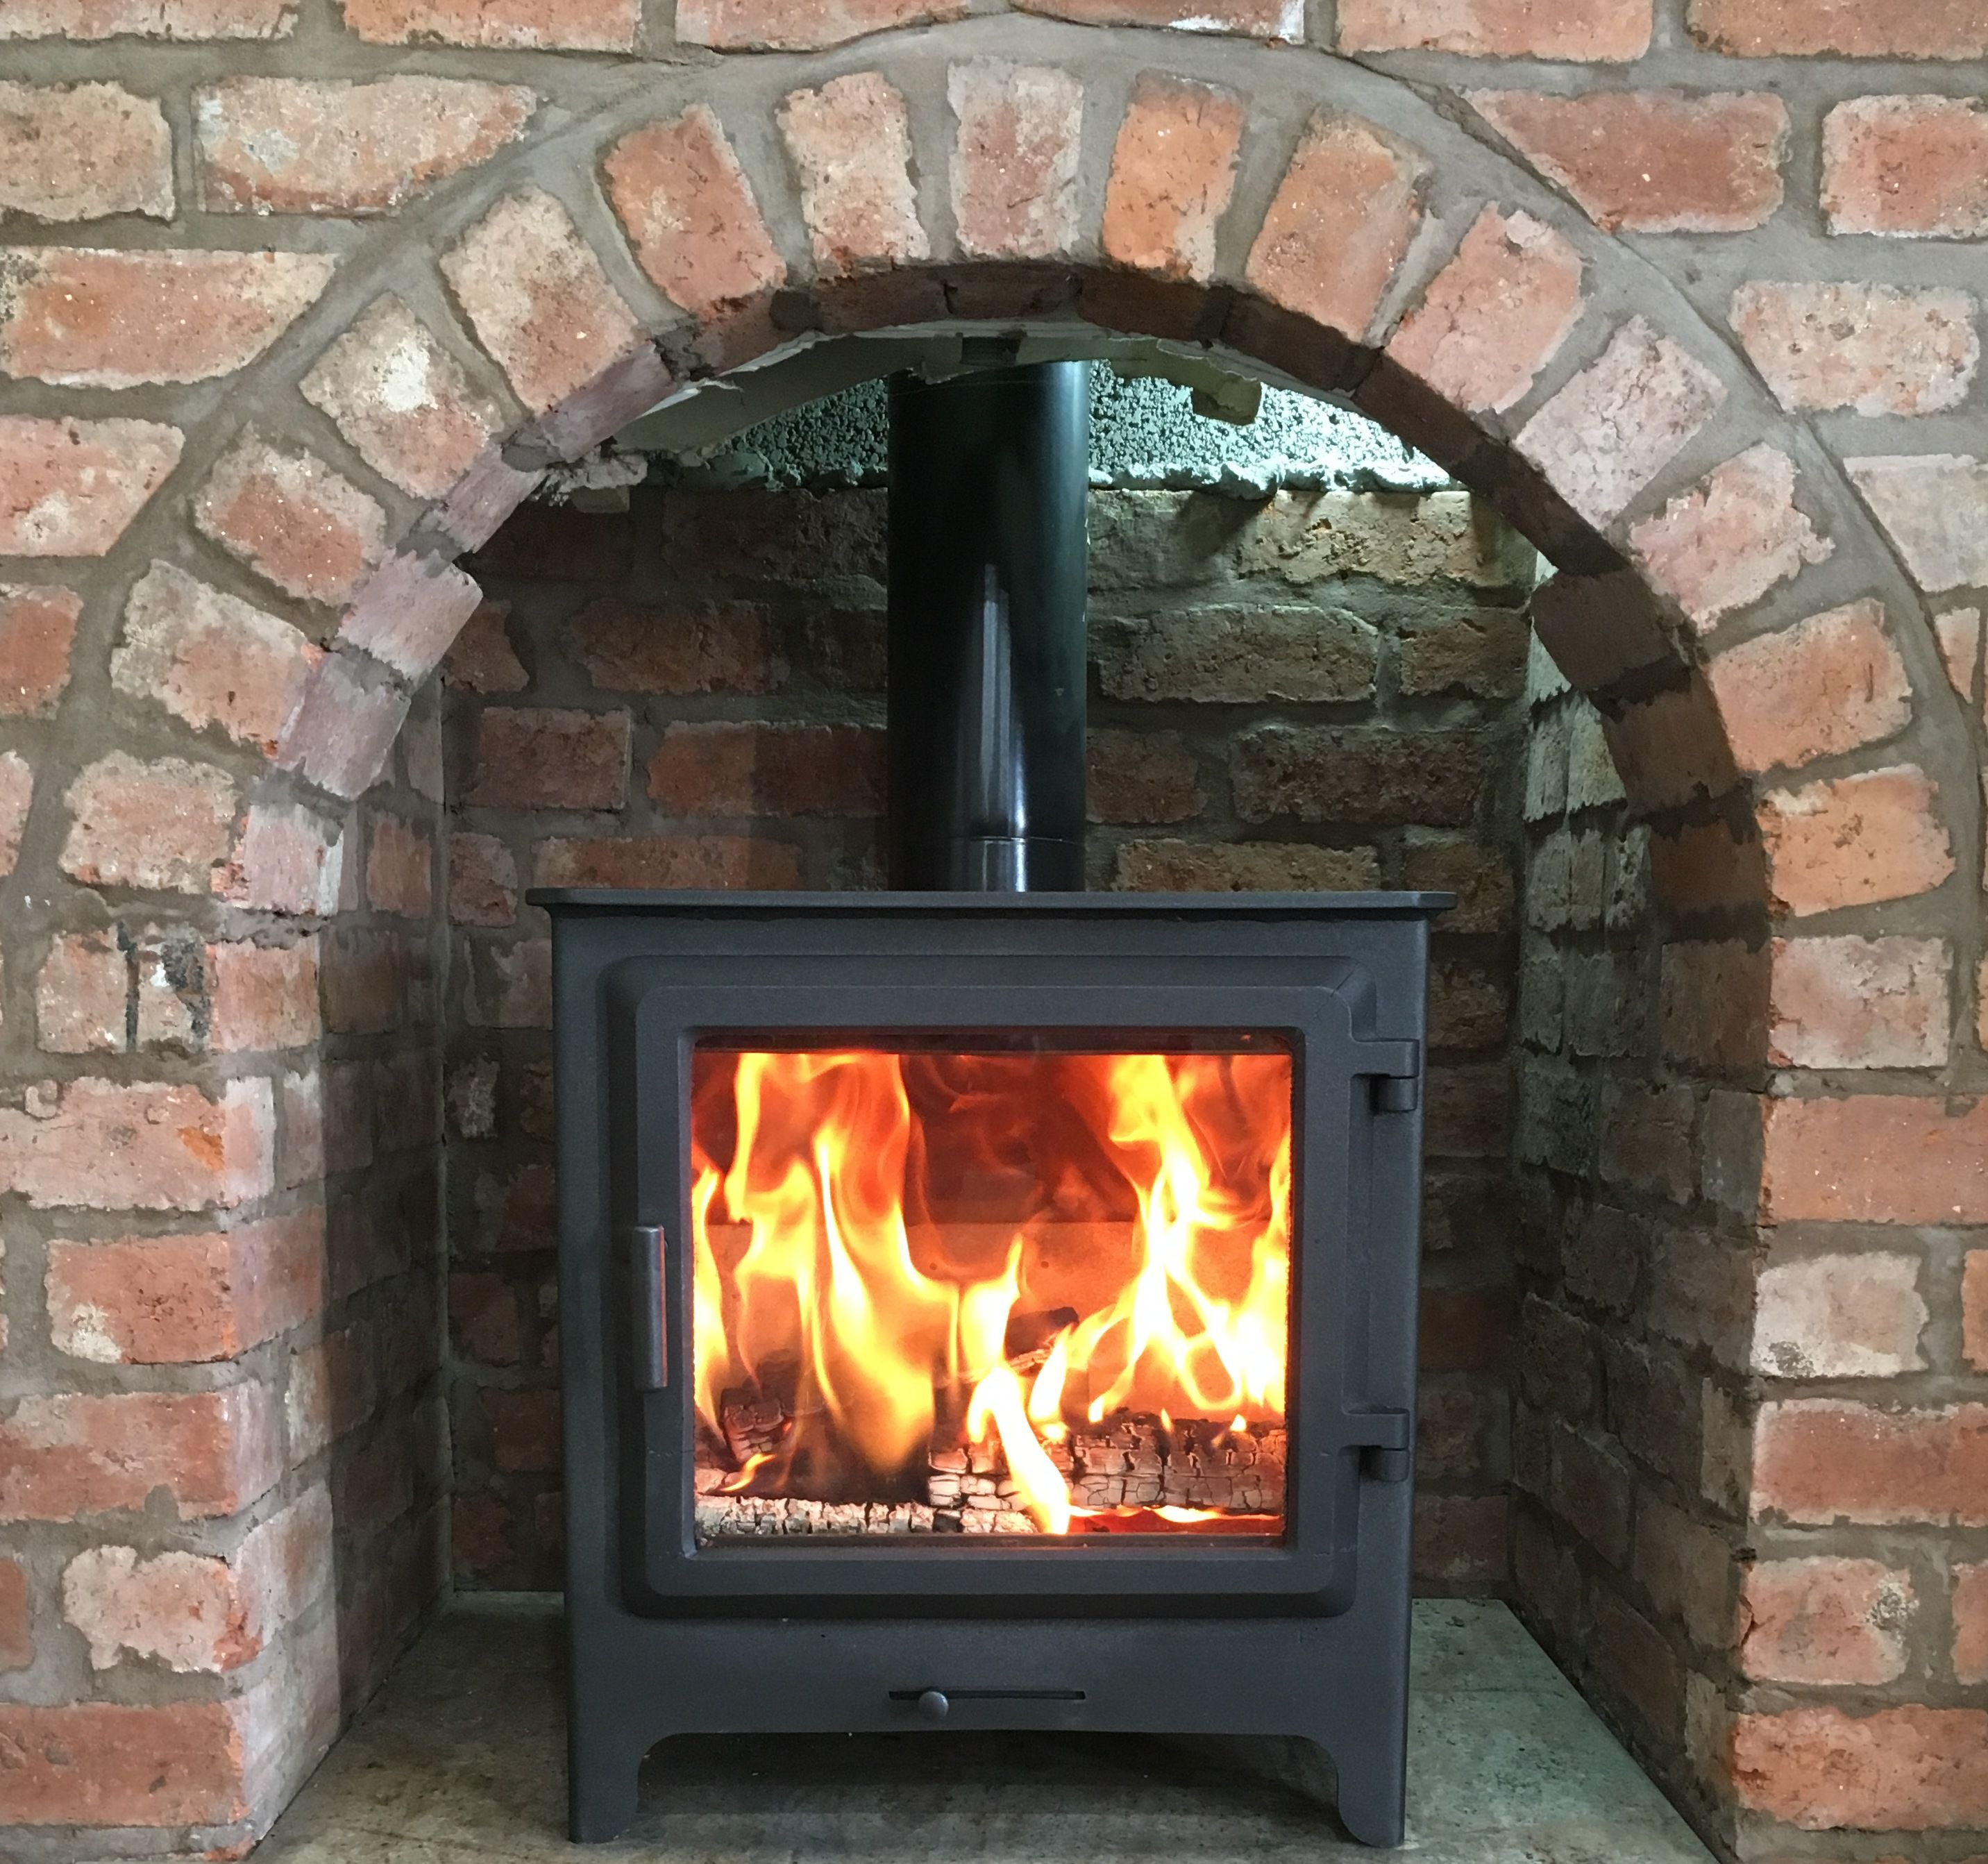 new merlin slimline plus woodburner a very large window